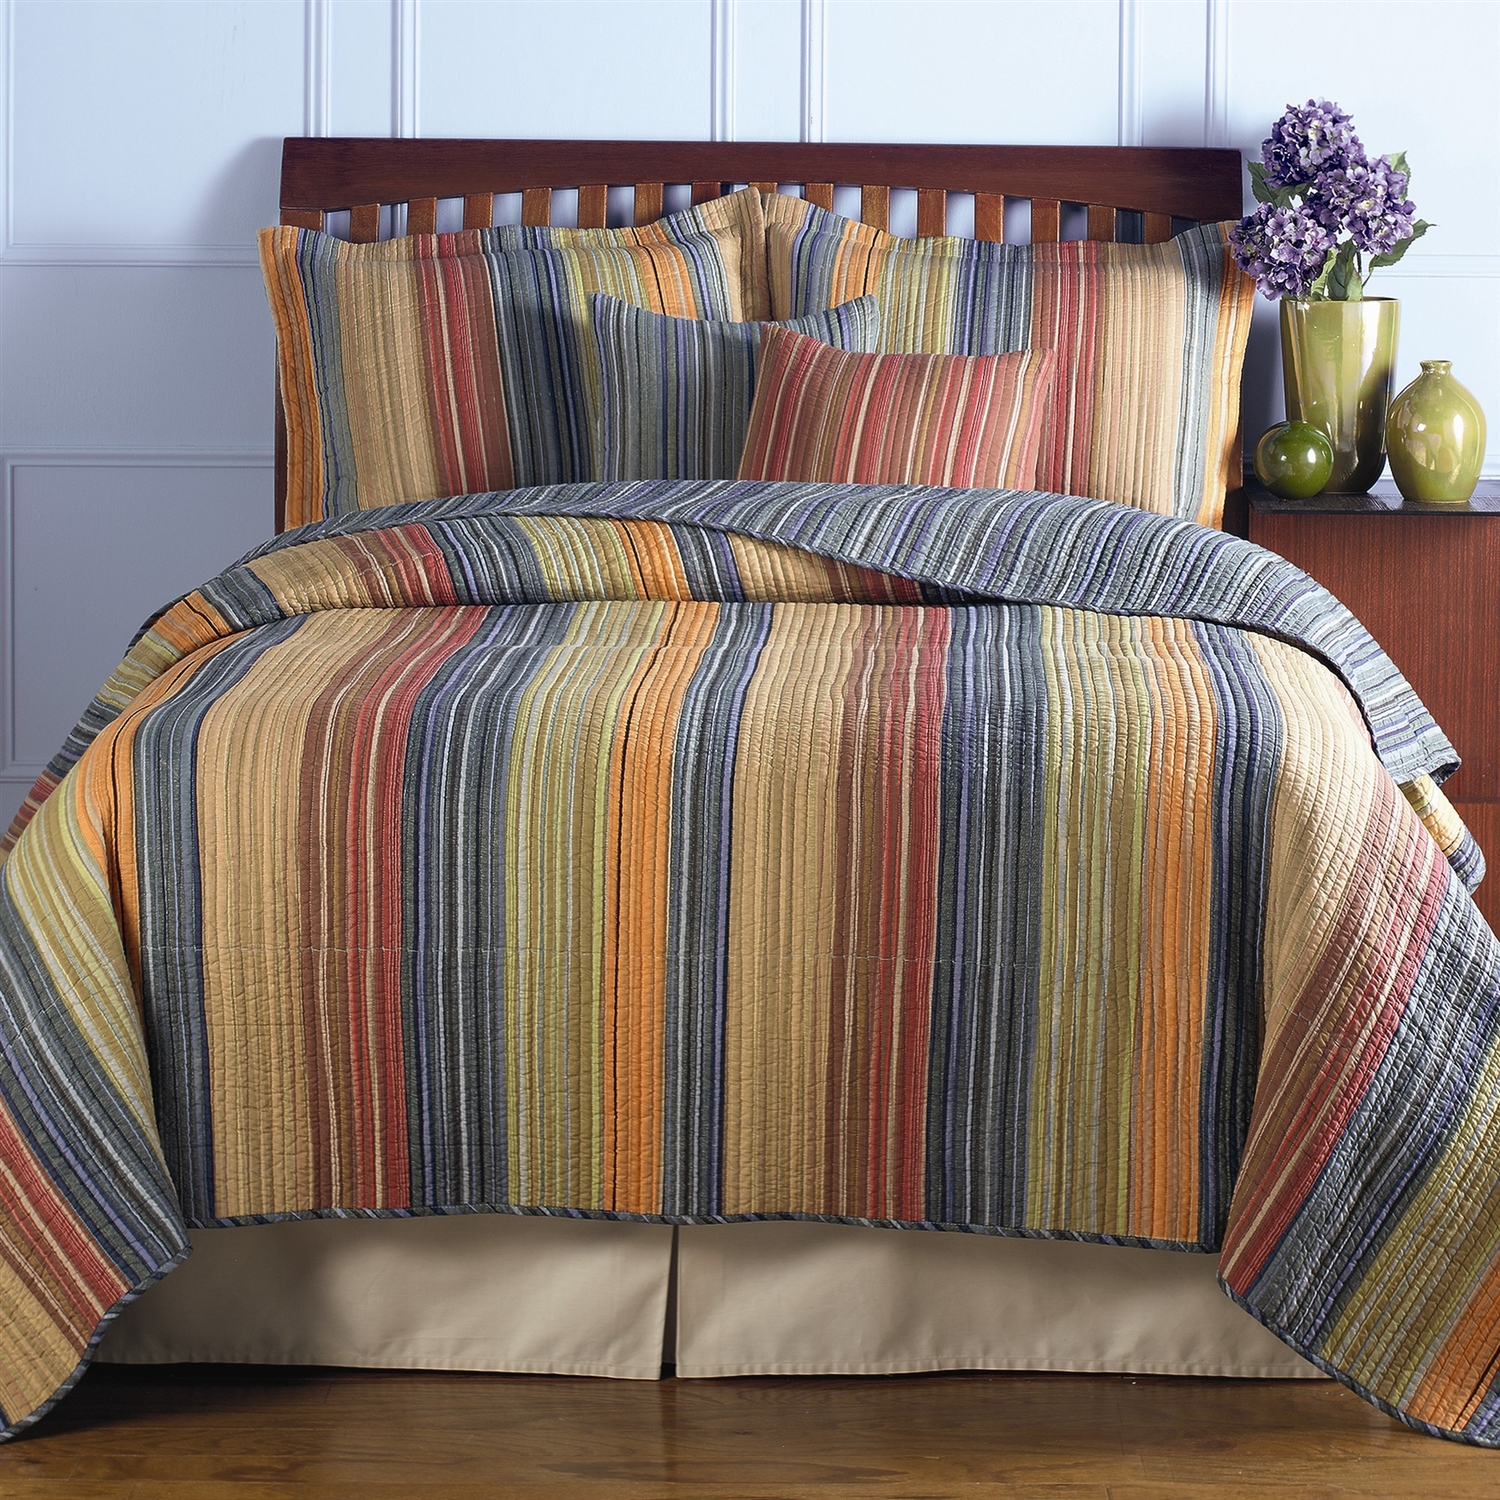 room bedspreads canada bed size queen ding quilt bedding spreads and matching comforters kits with comforter curtains